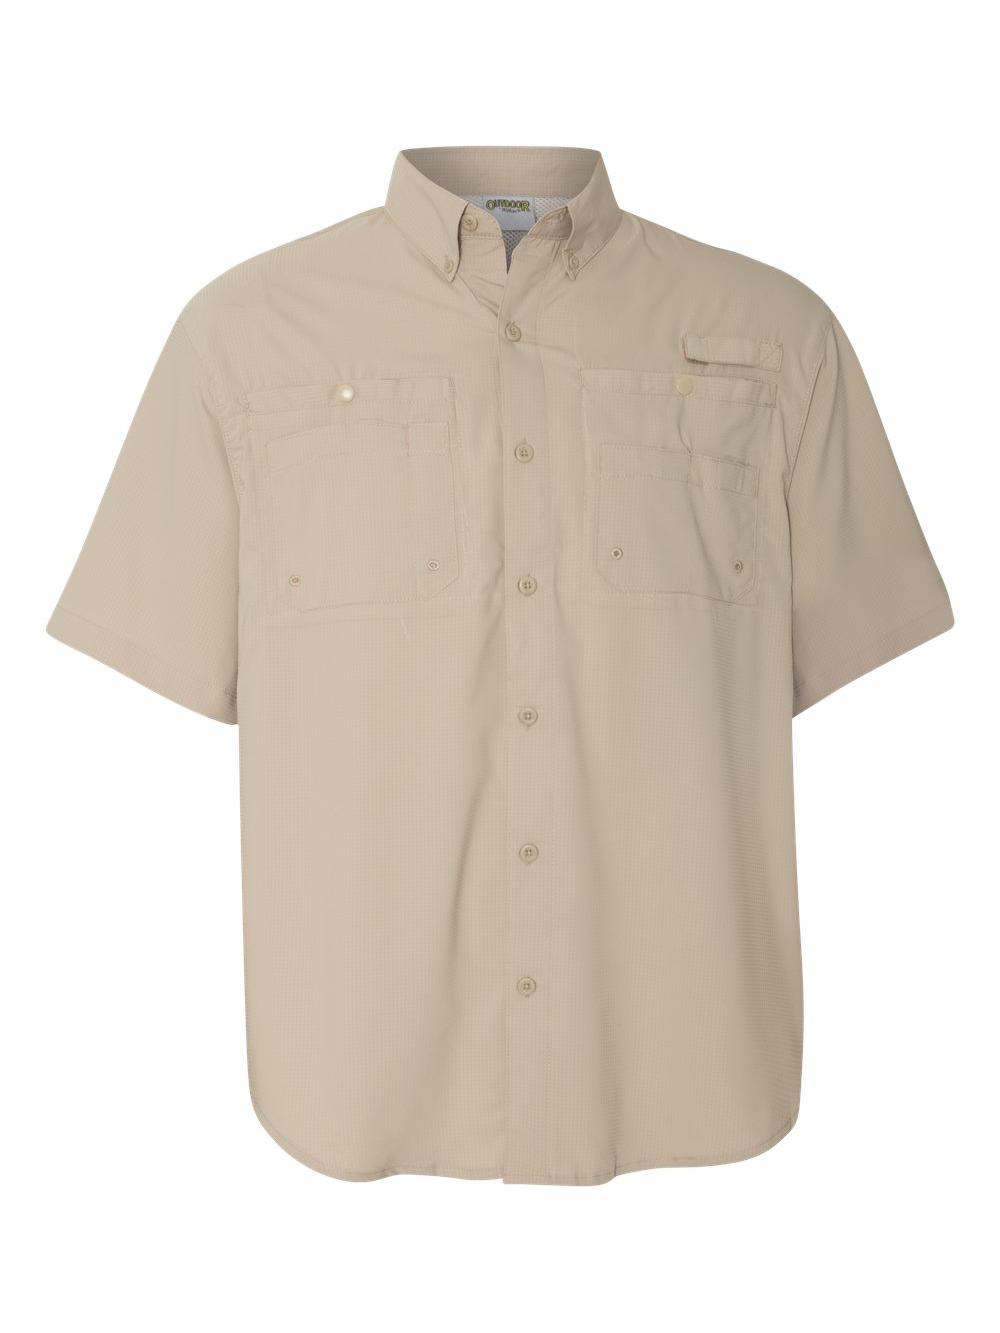 Hilton-Baja-Short-Sleeve-Fishing-Shirt-ZP2297 thumbnail 6